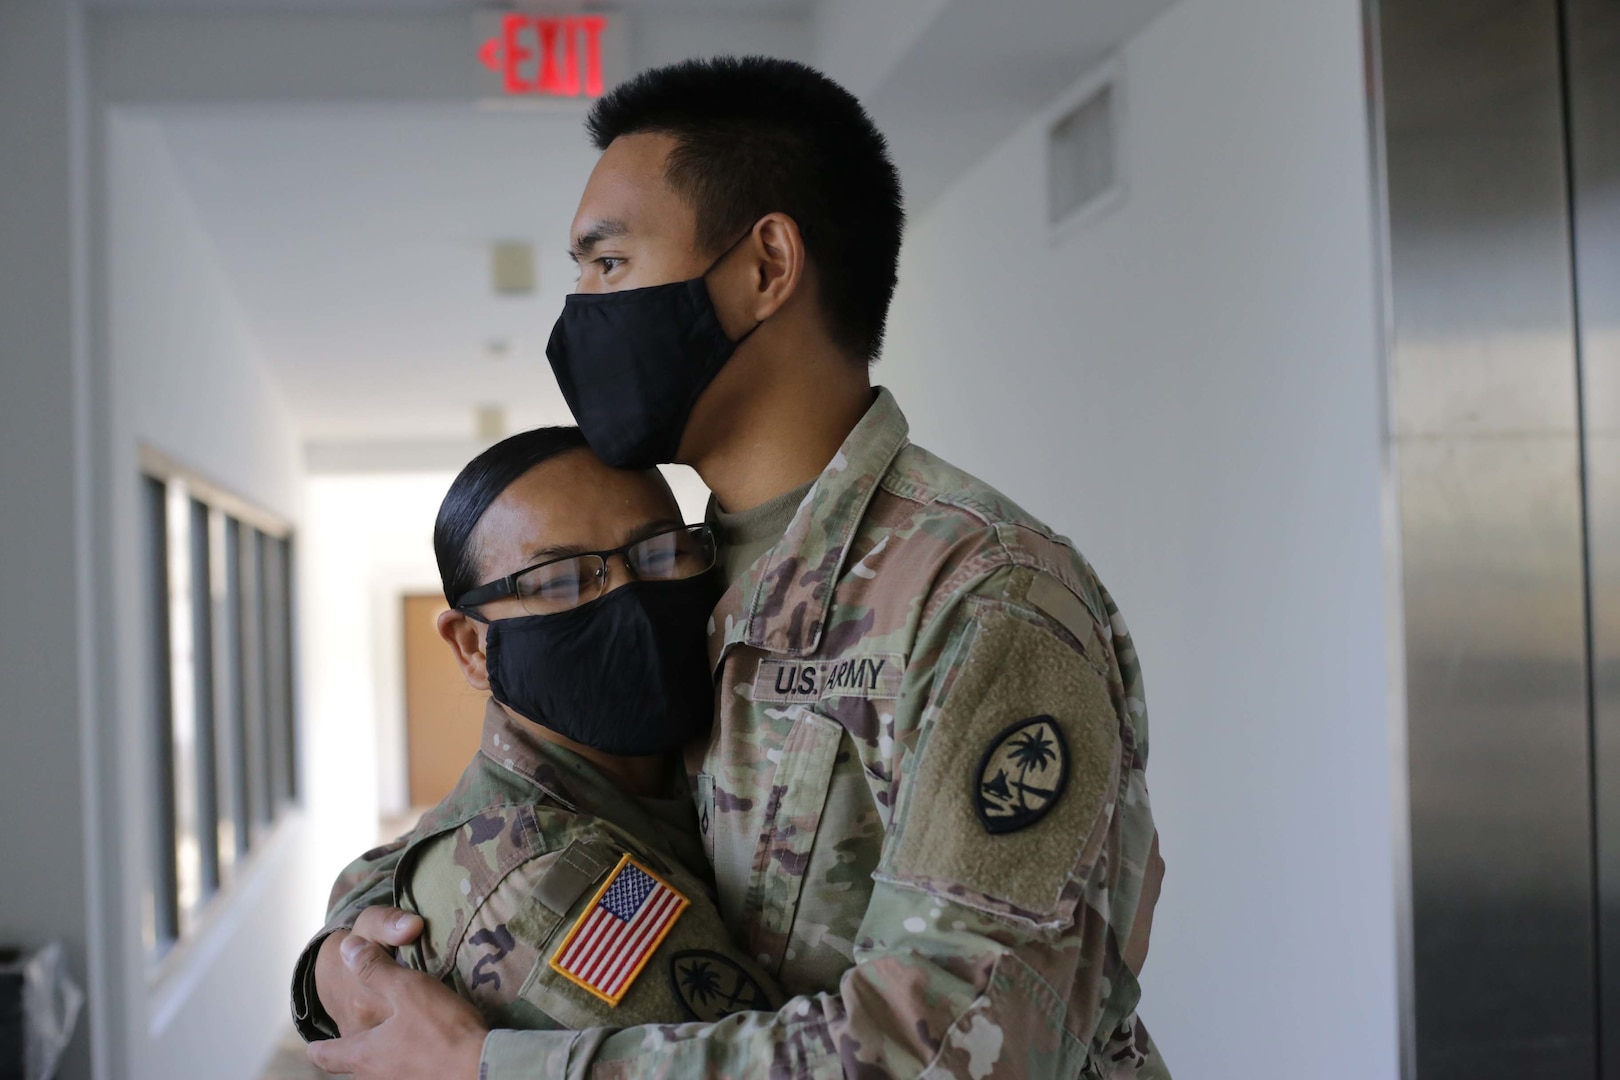 Lt. Col. Marlene Tarusan-Legaspi and her son, Pfc. Nikolas Legaspi, both with the Guam Army National Guard, find time during their COVID-19 missions to spend a moment together in Tamuning, Guam, June 8, 2020. Tarusan-Legaspi and her son were activated to support the government of Guam's response to the COVID-19 pandemic.